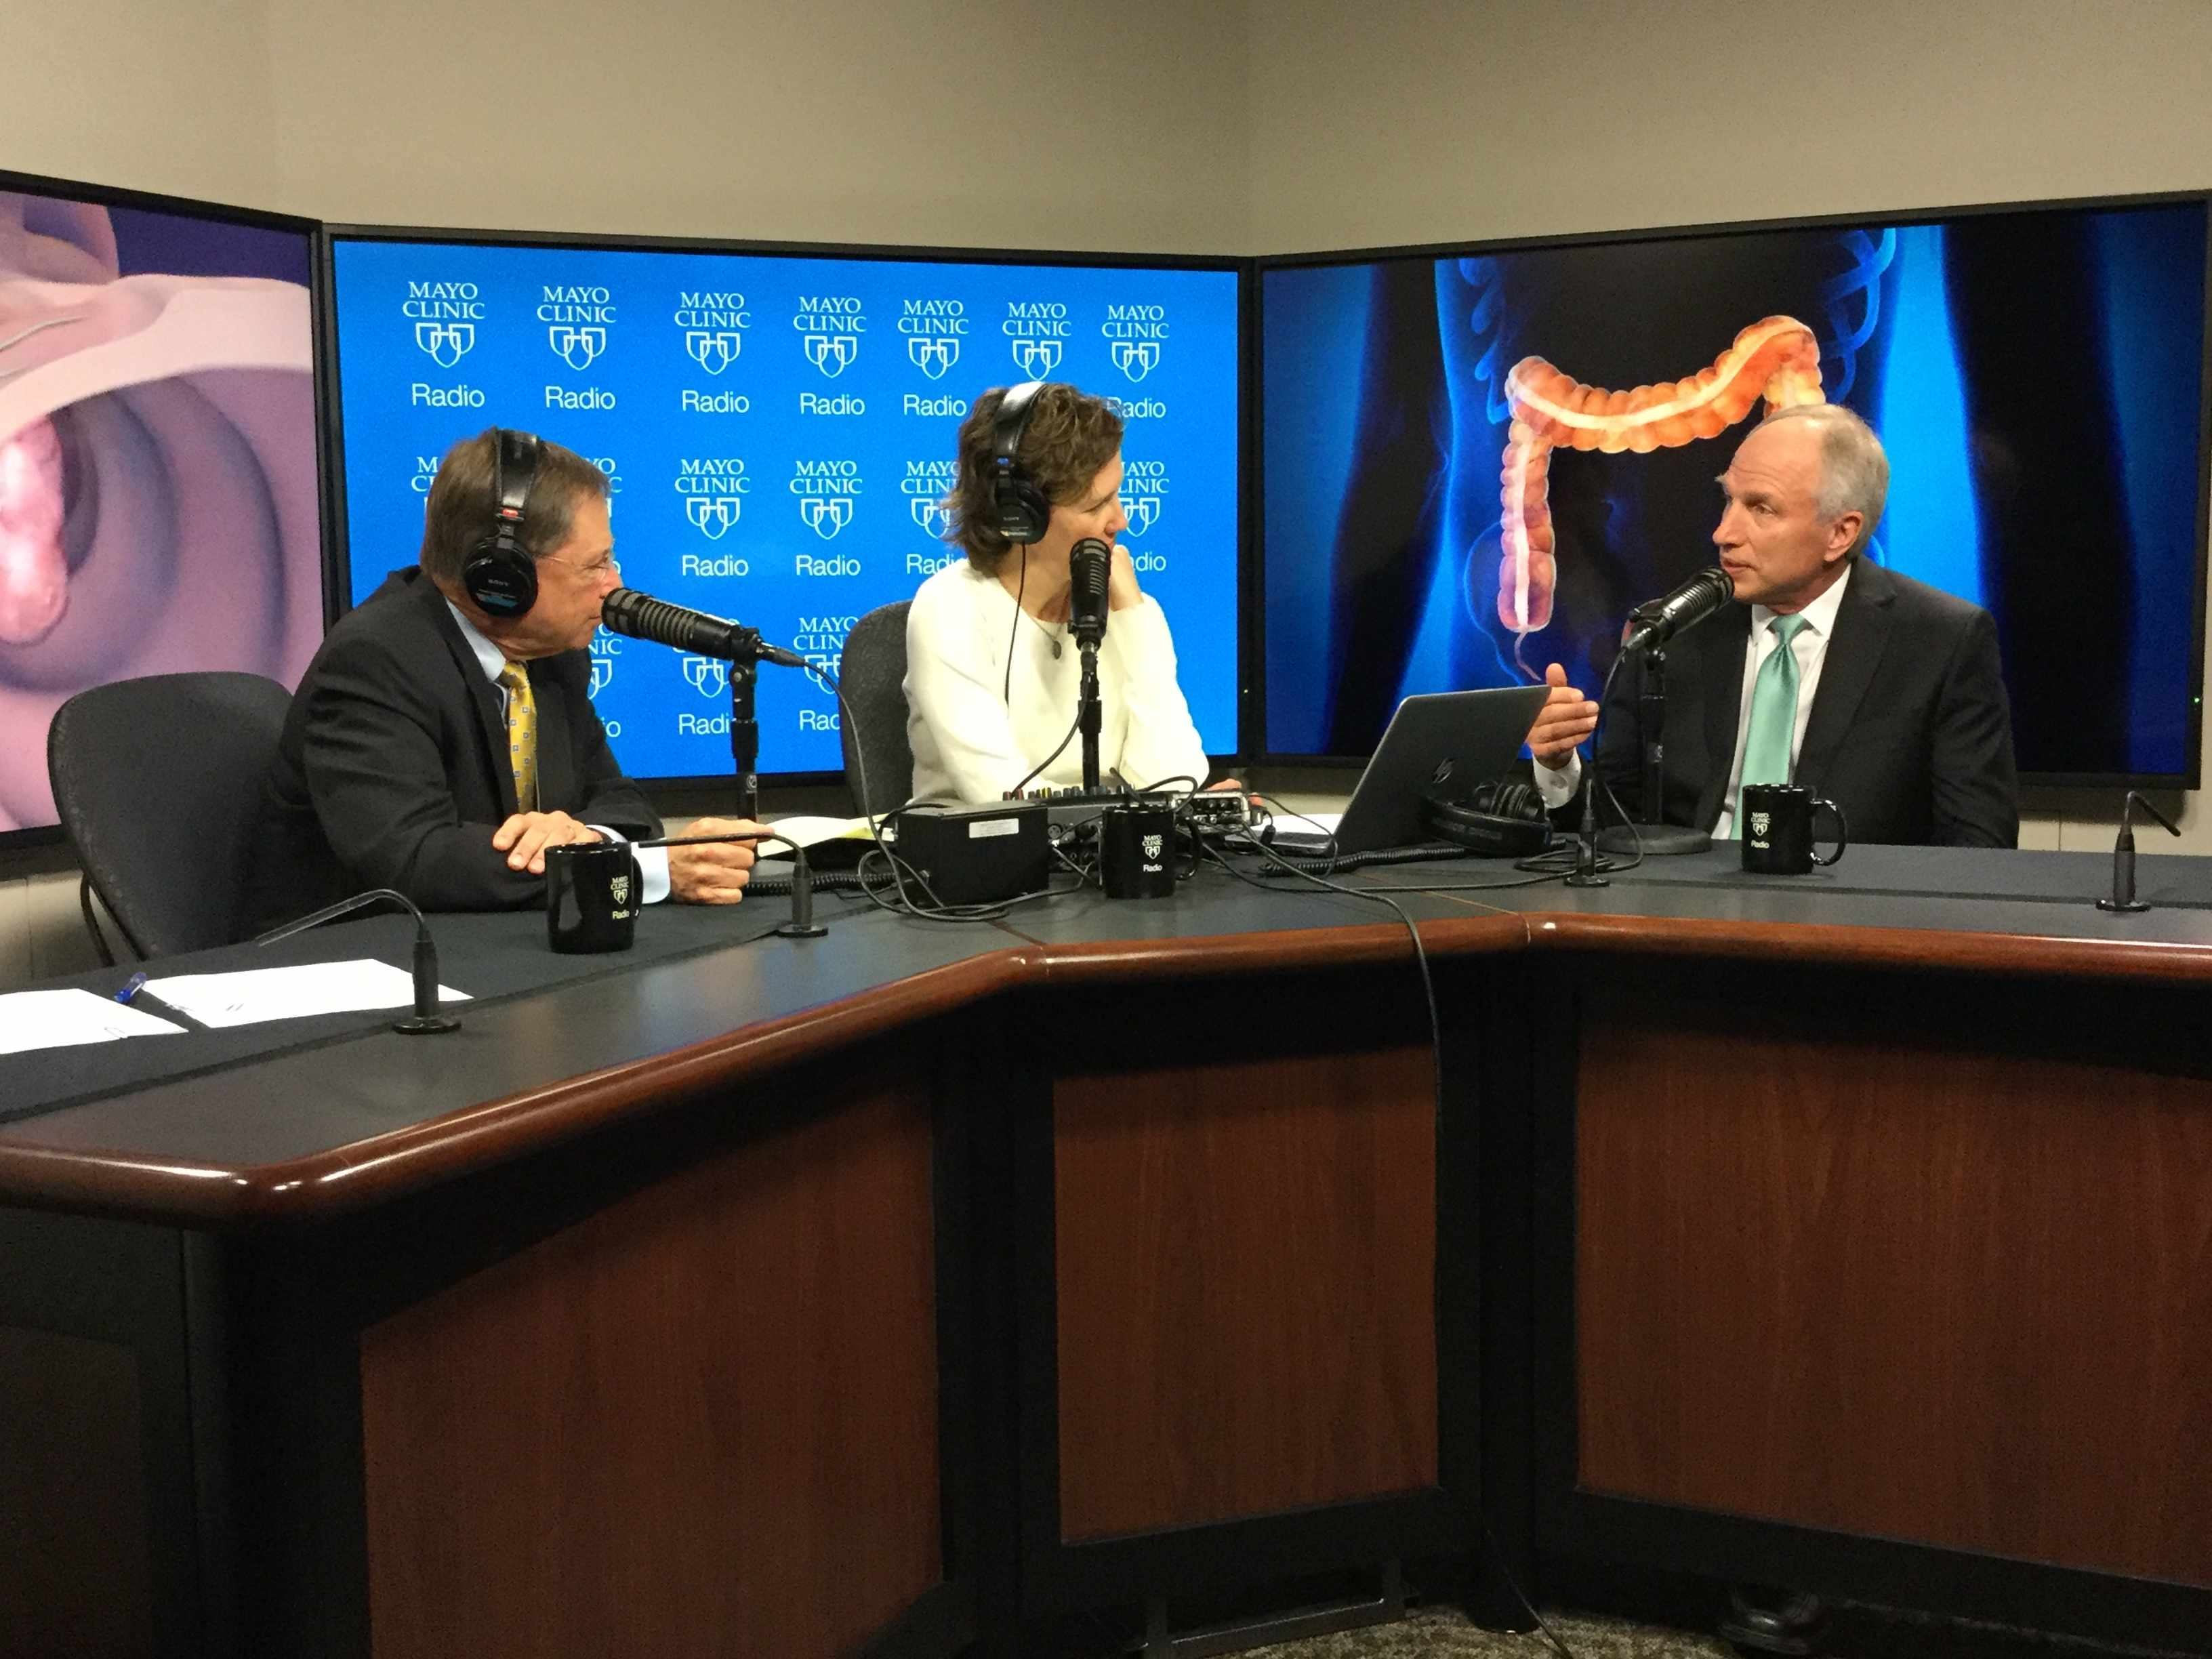 Dr. David Ahlquist being interviewed on Mayo Clinic Radio